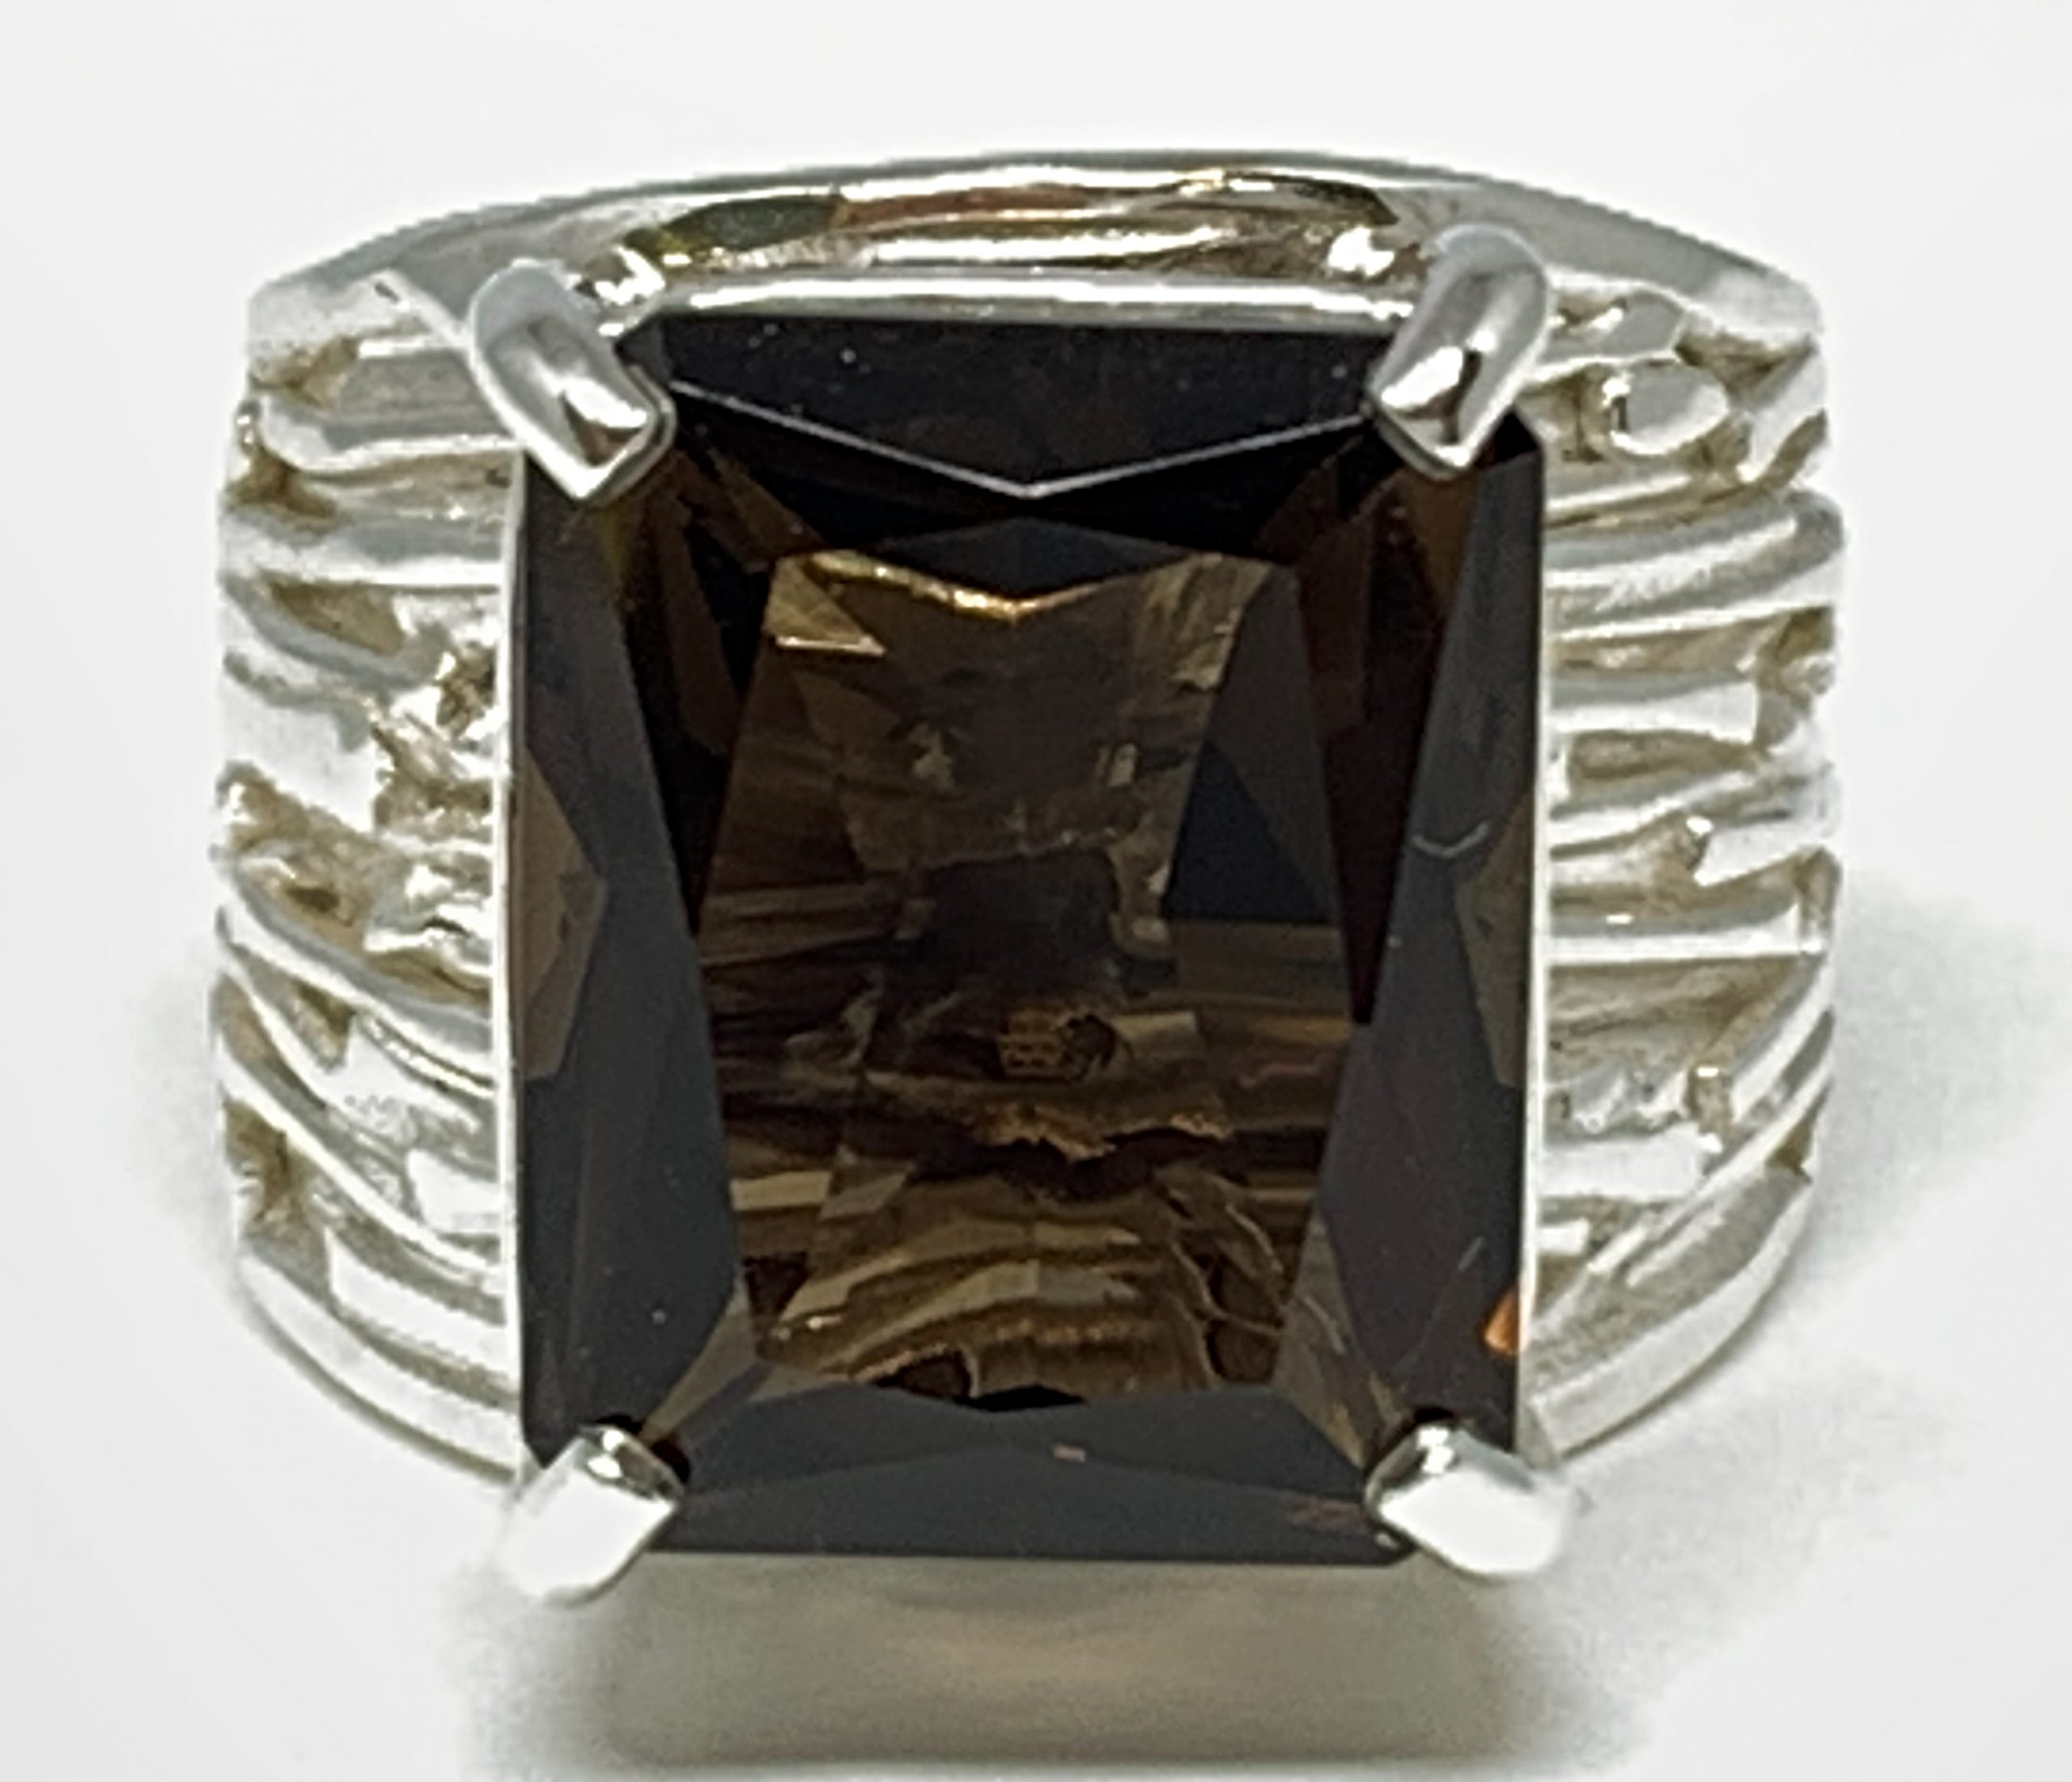 Sterling silver and smoky quartz ring by A&R Jewellery | Effusion Art Gallery + Cast Glass Studio, Invermere BC